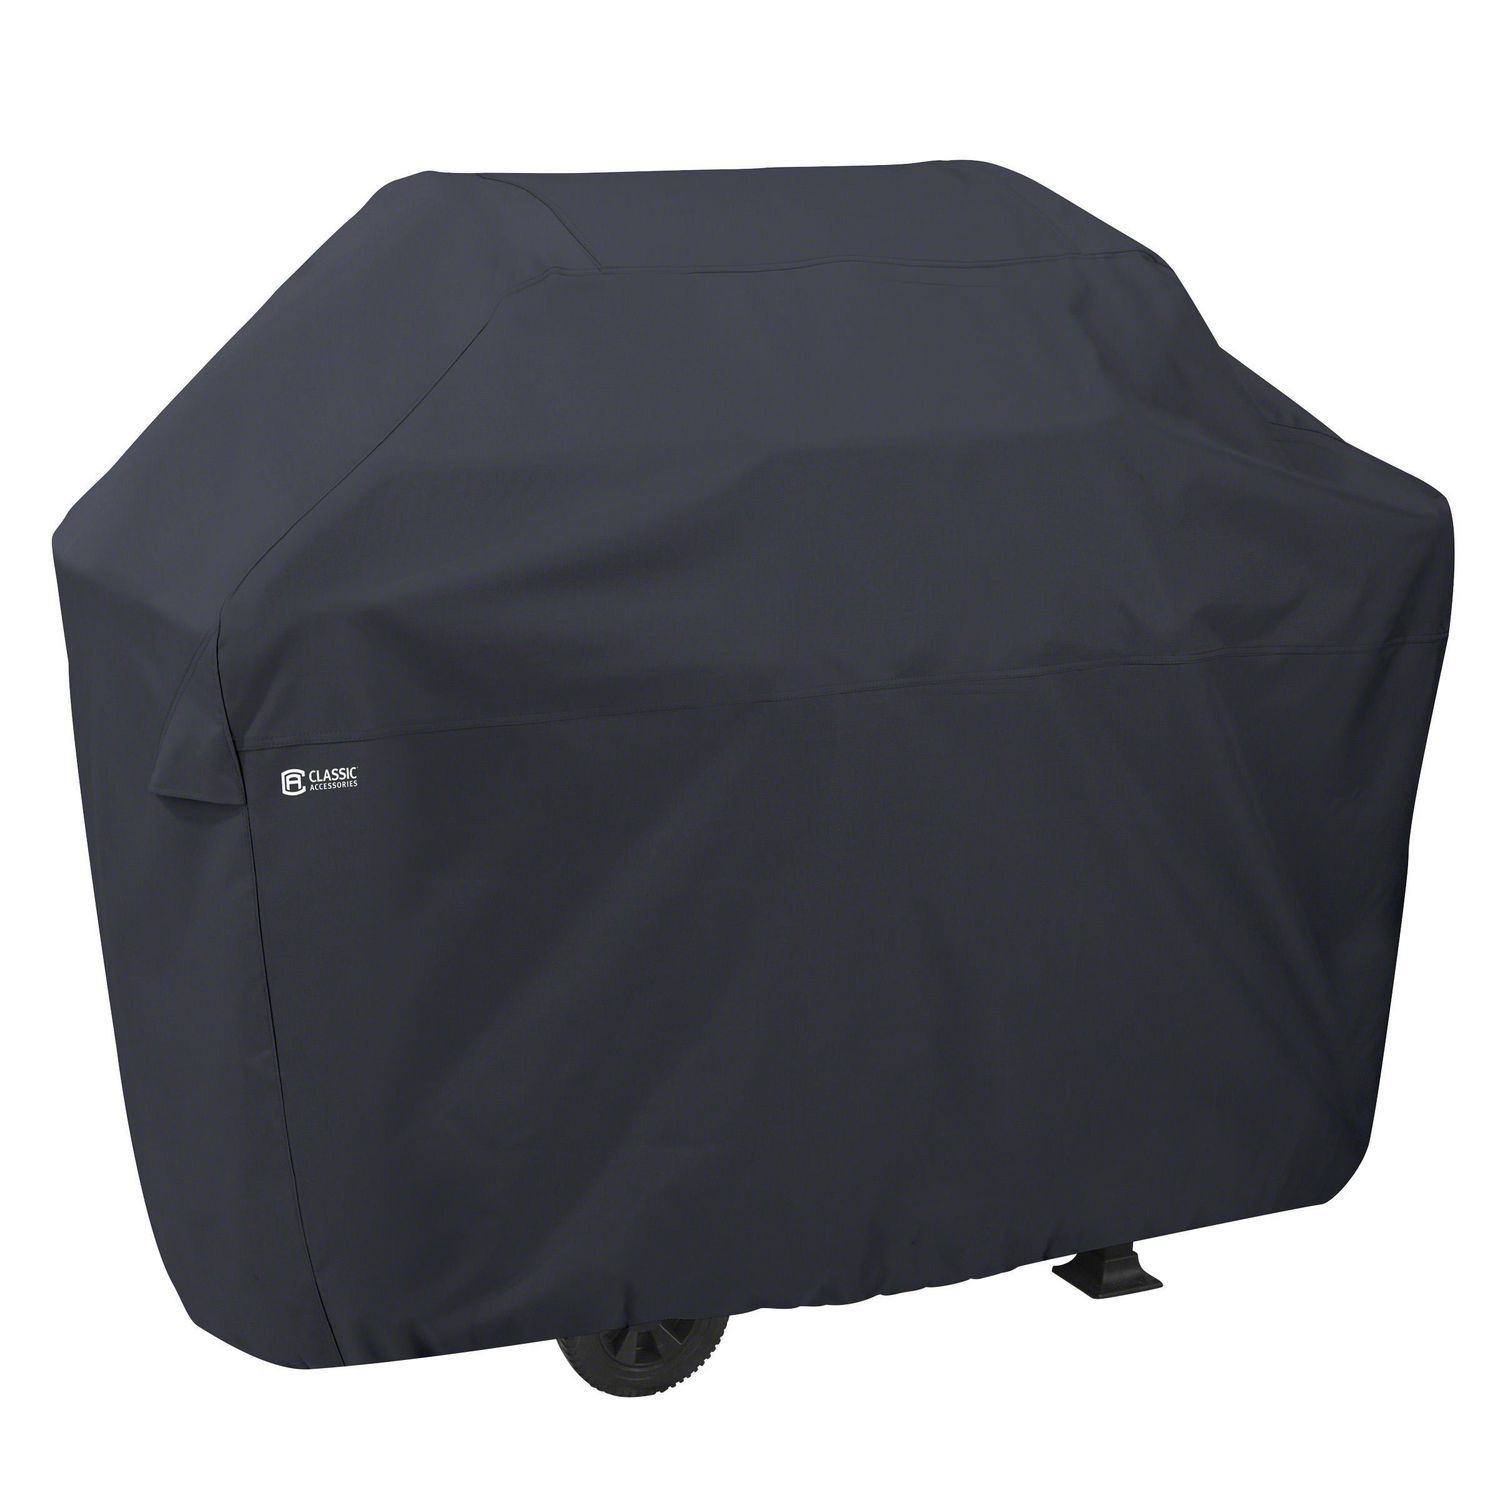 Classic Accessories Patio Grill Cover, XX-Large - Best BBQ Cover